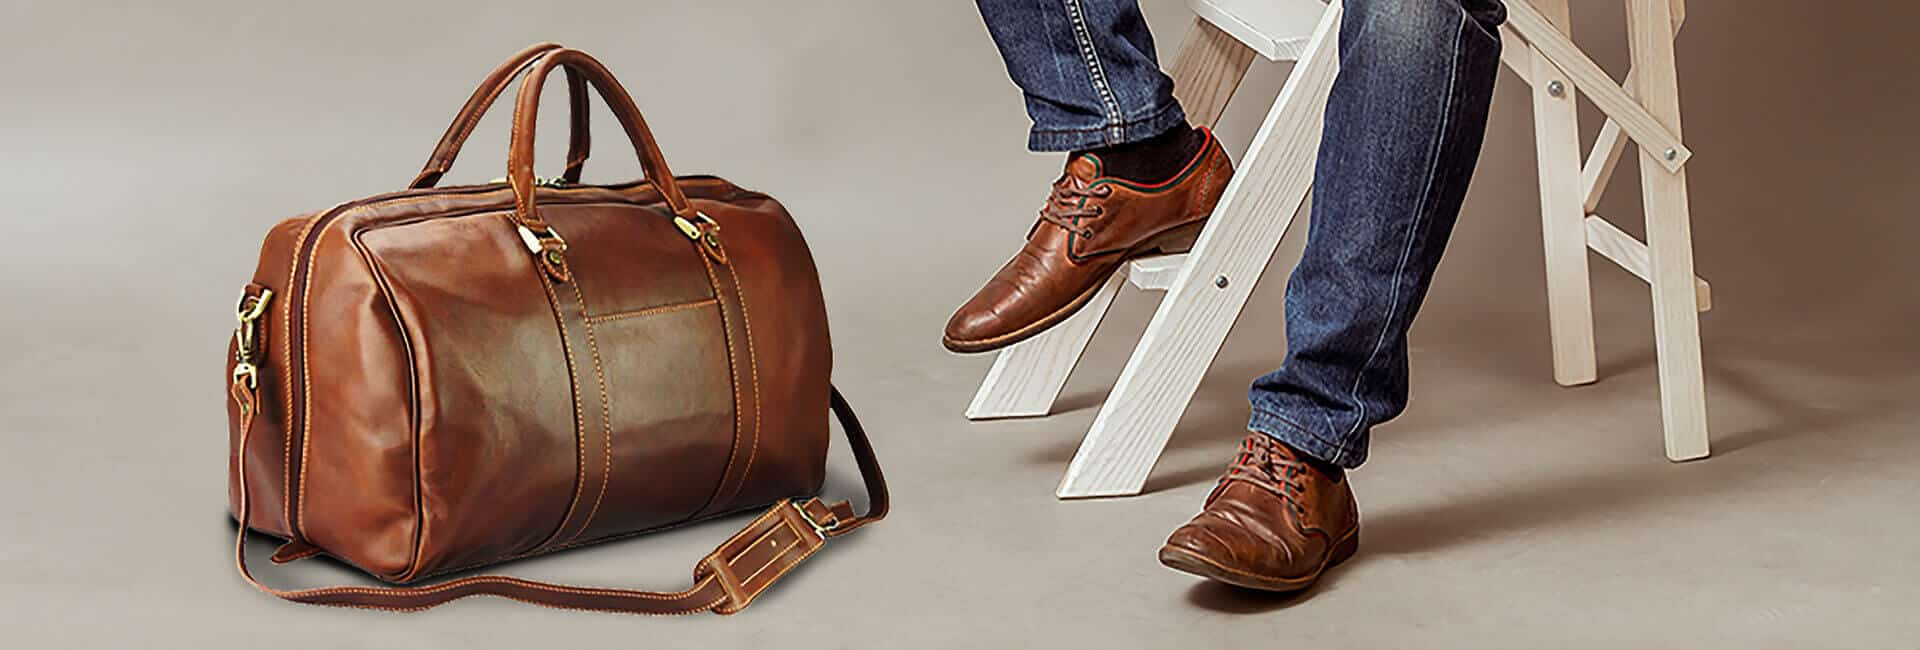 Move with style: Discover our travel collection